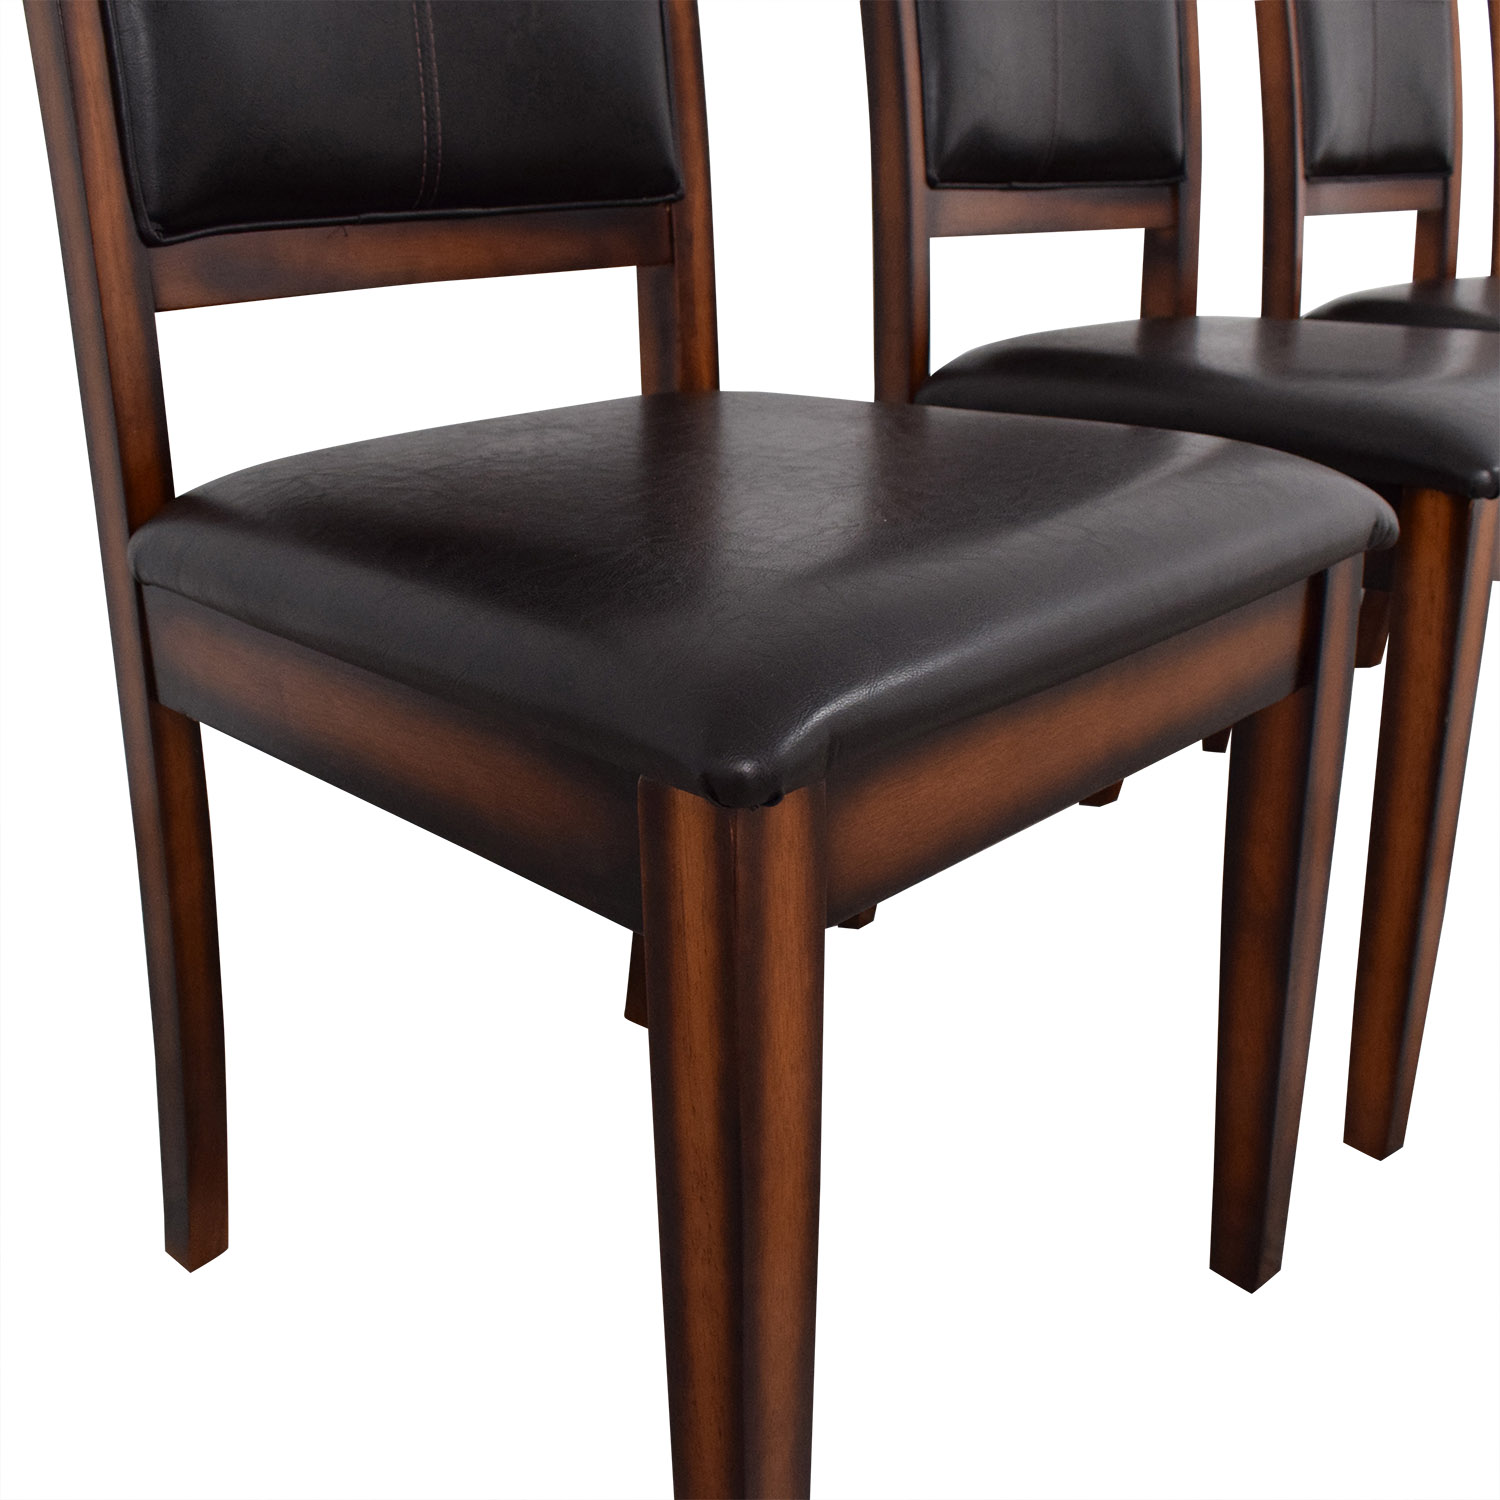 shop Raymour & Flanigan Raymour & Flanigan Upholstered Dining Chairs online